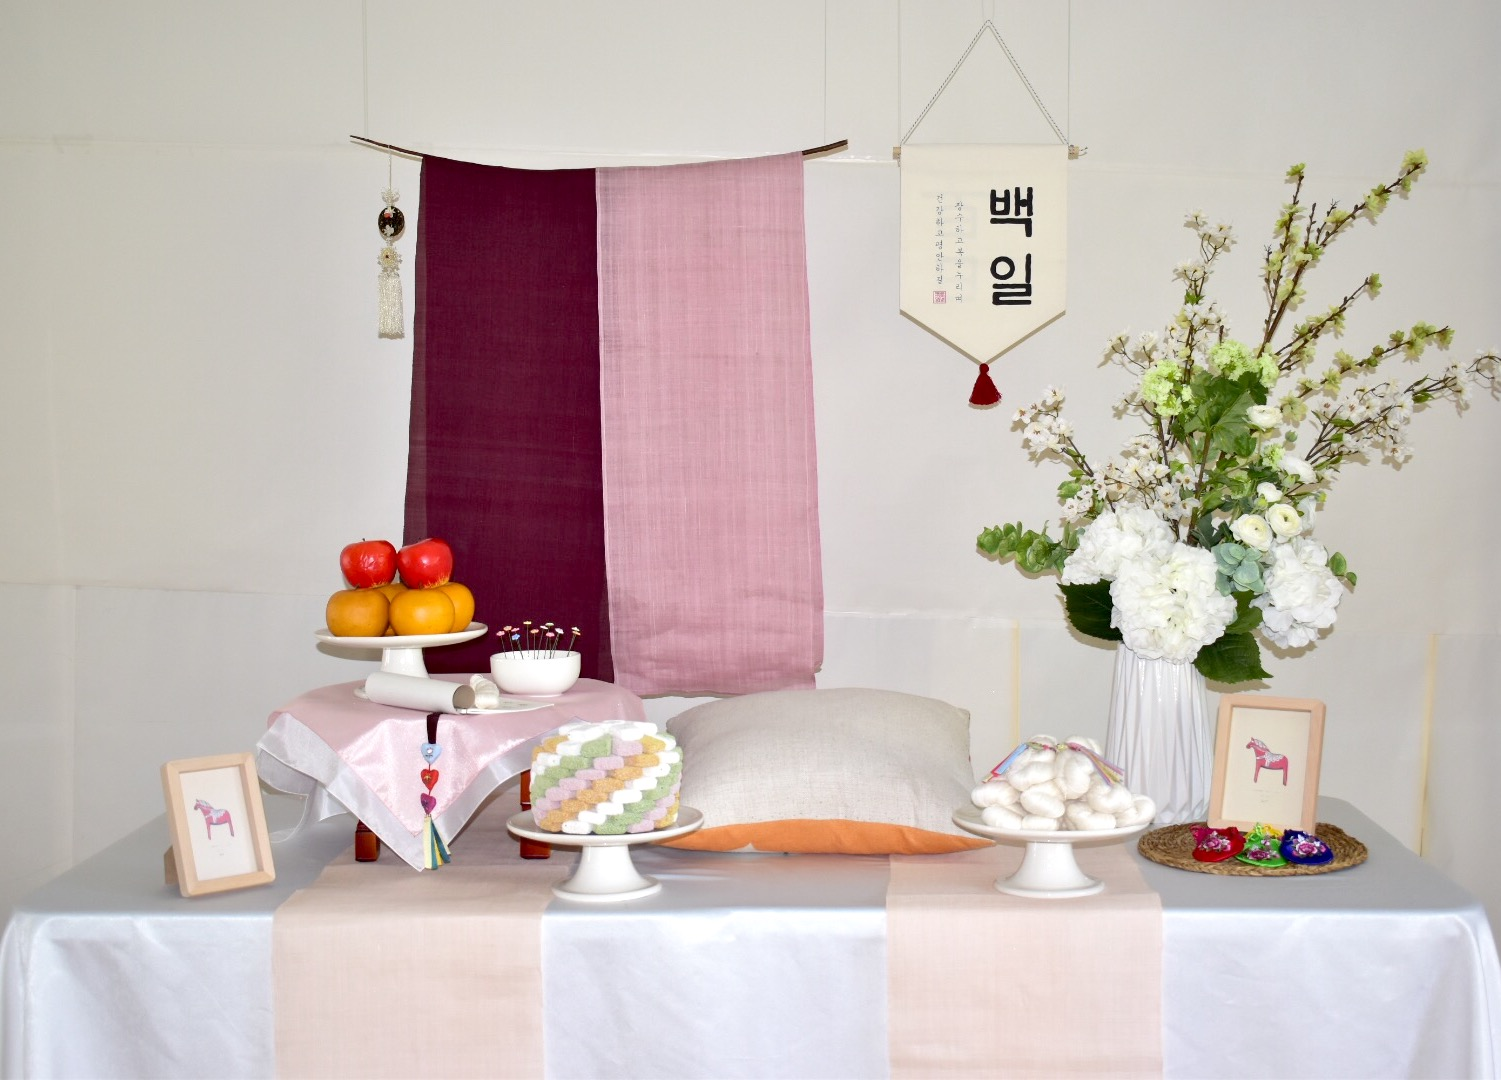 PETIT STYLE TABLE RENTAL:딥핑크 백일(DEEP PINK) - Included: Two tone hanging runner, round wooden table, traditional tablecloth, traditional runner, small tablecloth, display fruits(option), rice cakes(option), silk flowers and plastic vases, shil ta rae, traditional accessories are randomly picked, 2 picture frame** Mix &Match backdrops and runners *** Pick up- Everything included in the picture except display rice cakes, display fruits, cushion.* Out of state - display rice cakes, apples are not included. (optional).* Shipping fee will apply. Fees might vary depending on location.상품구성: 투톤 행인 러너 2개, 상 1개, 한복 원단 러너,상보, 모형 과일(옵션), 모형 떡(옵션), 꽃과 아크릴 화병, 상화, 실타래, 전통 장식품들 램덤, 액자 2개** 러너 Mix & Match 하실수 있습니다.*** Pick up- 사진에 모든 물품 포함되지만 모형떡, 과일, 방석은 포함되지 않습니다. 전통 소품들은 랜덤입니다.* 타주시 - 깨지지 않는 소품들로 나갑니다. 모형 과일, 떡은 옵션입니다. 전통 장식품들은 랜덤입니다.*배송시 배송비는 추가이며, 지역따라 배송비가 다를수 있습니다.